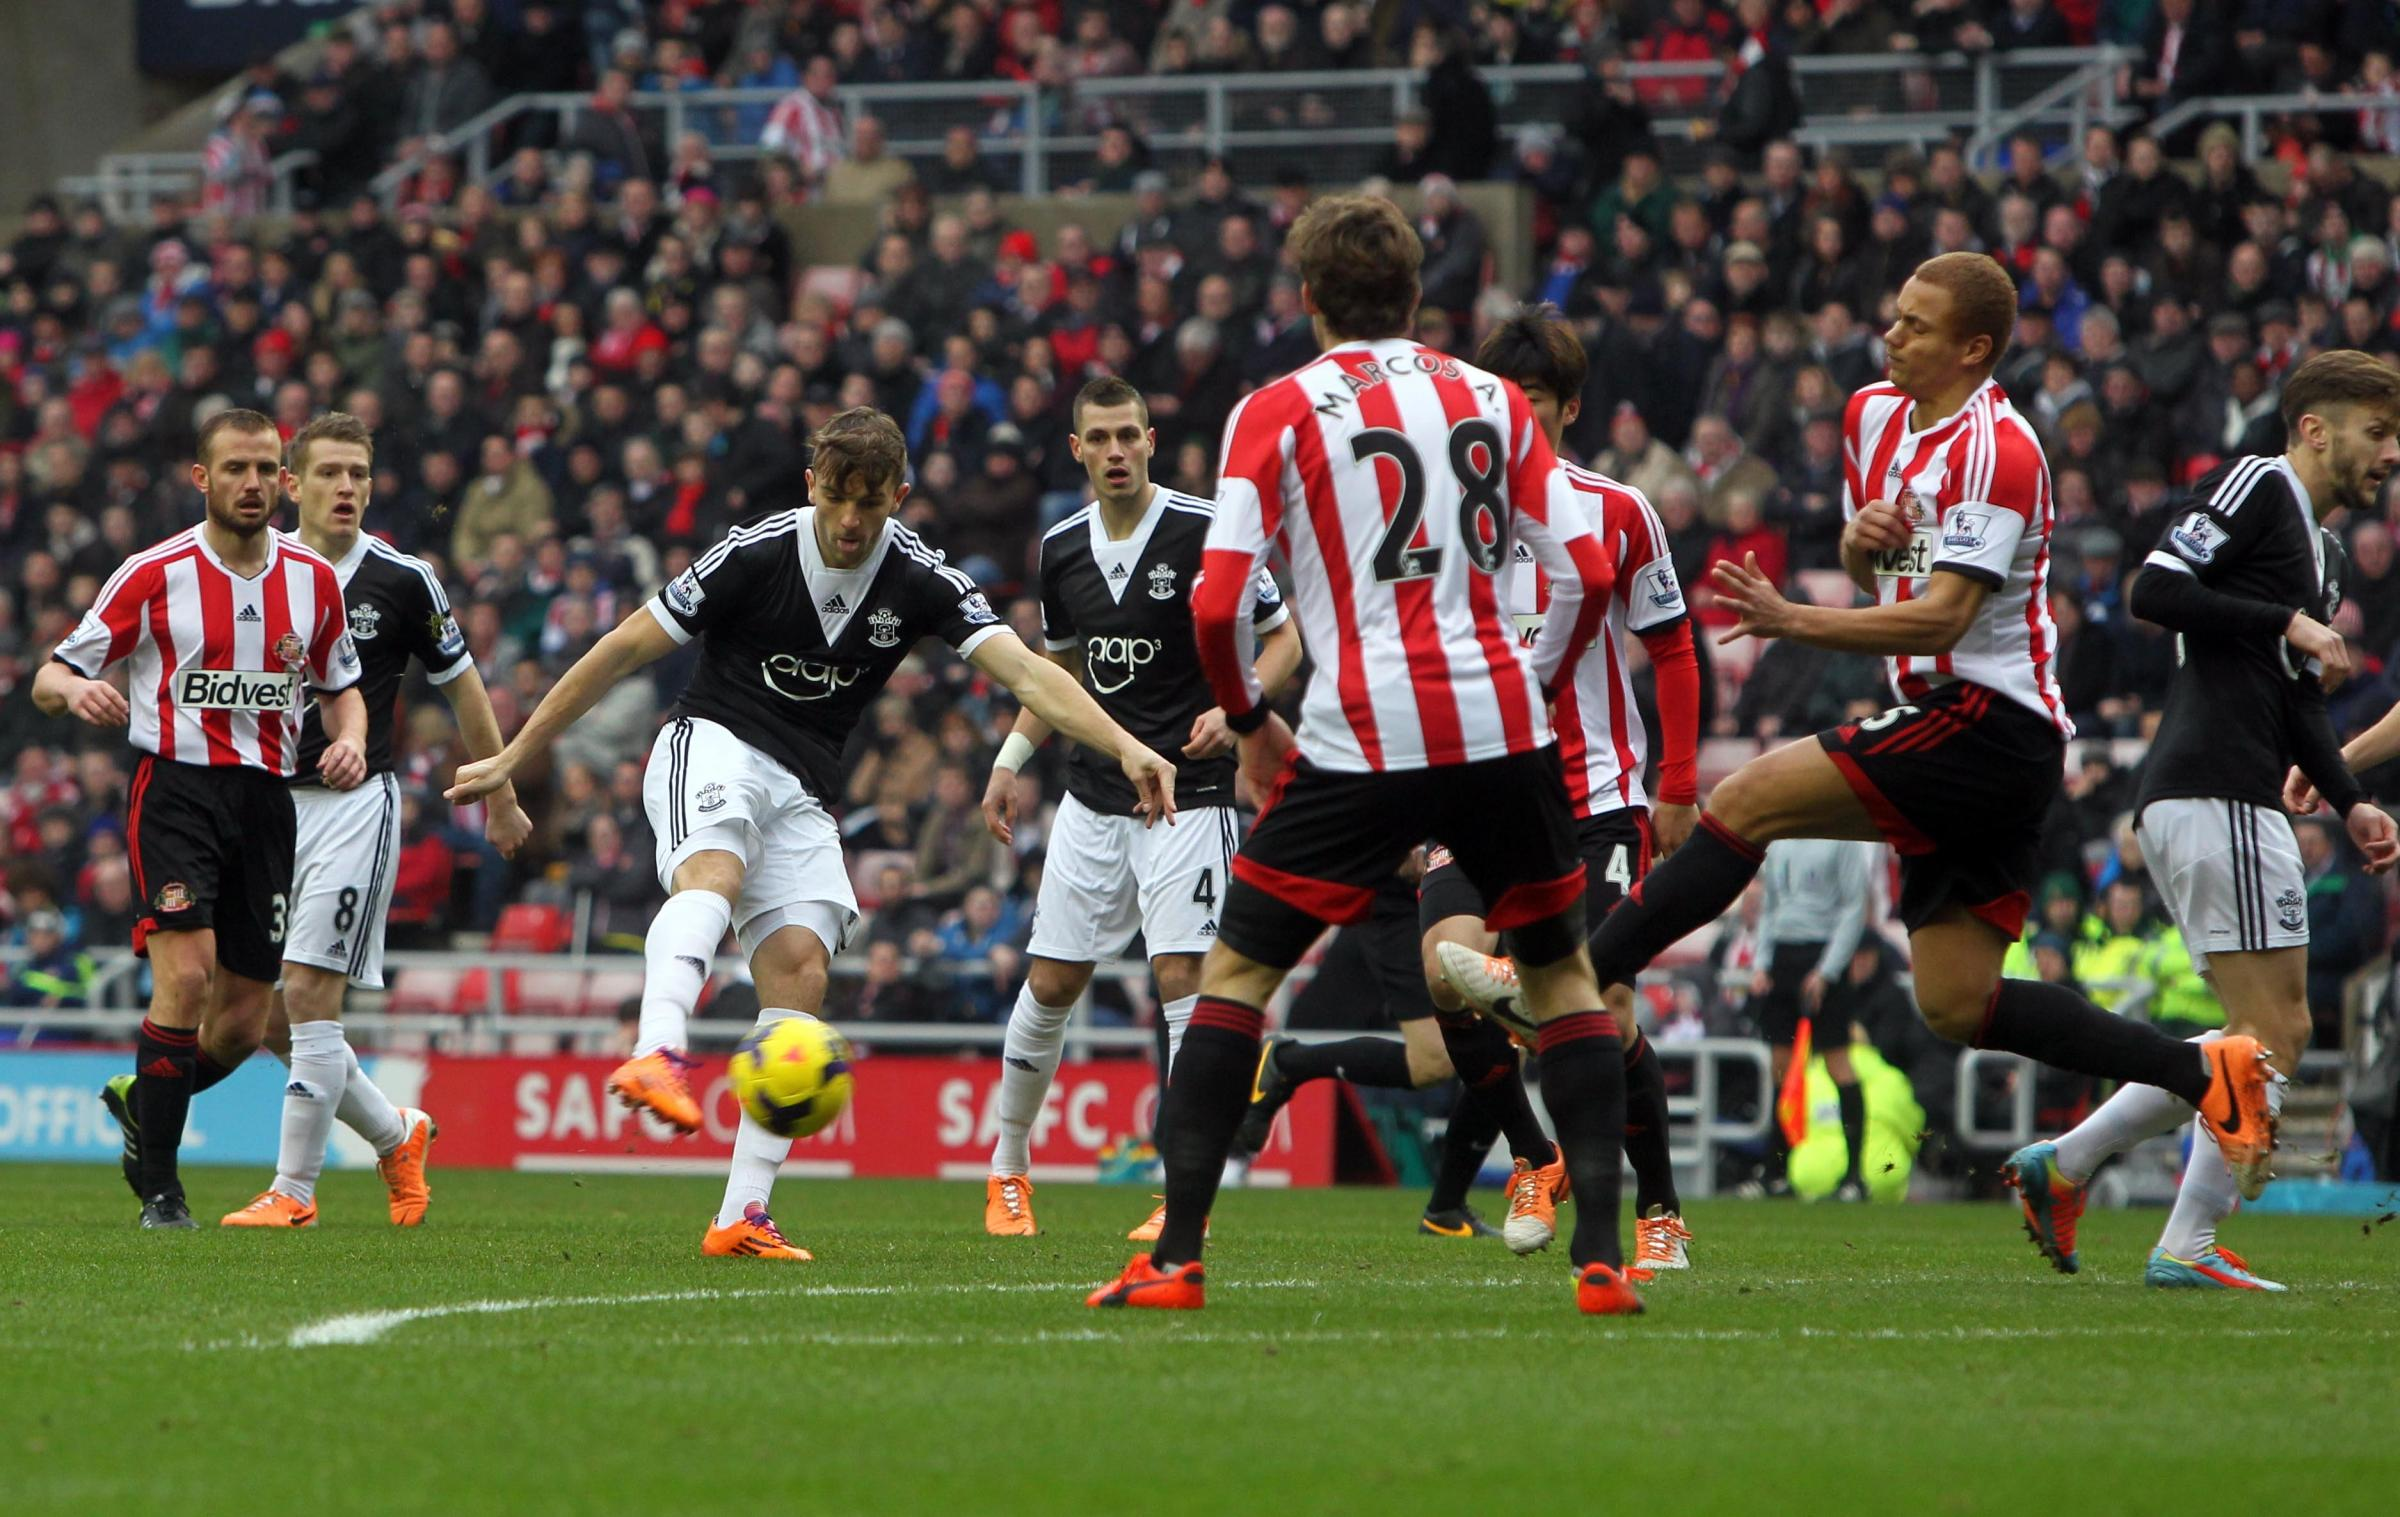 Jay Rodriguez firing towards the back of the net to open the scores